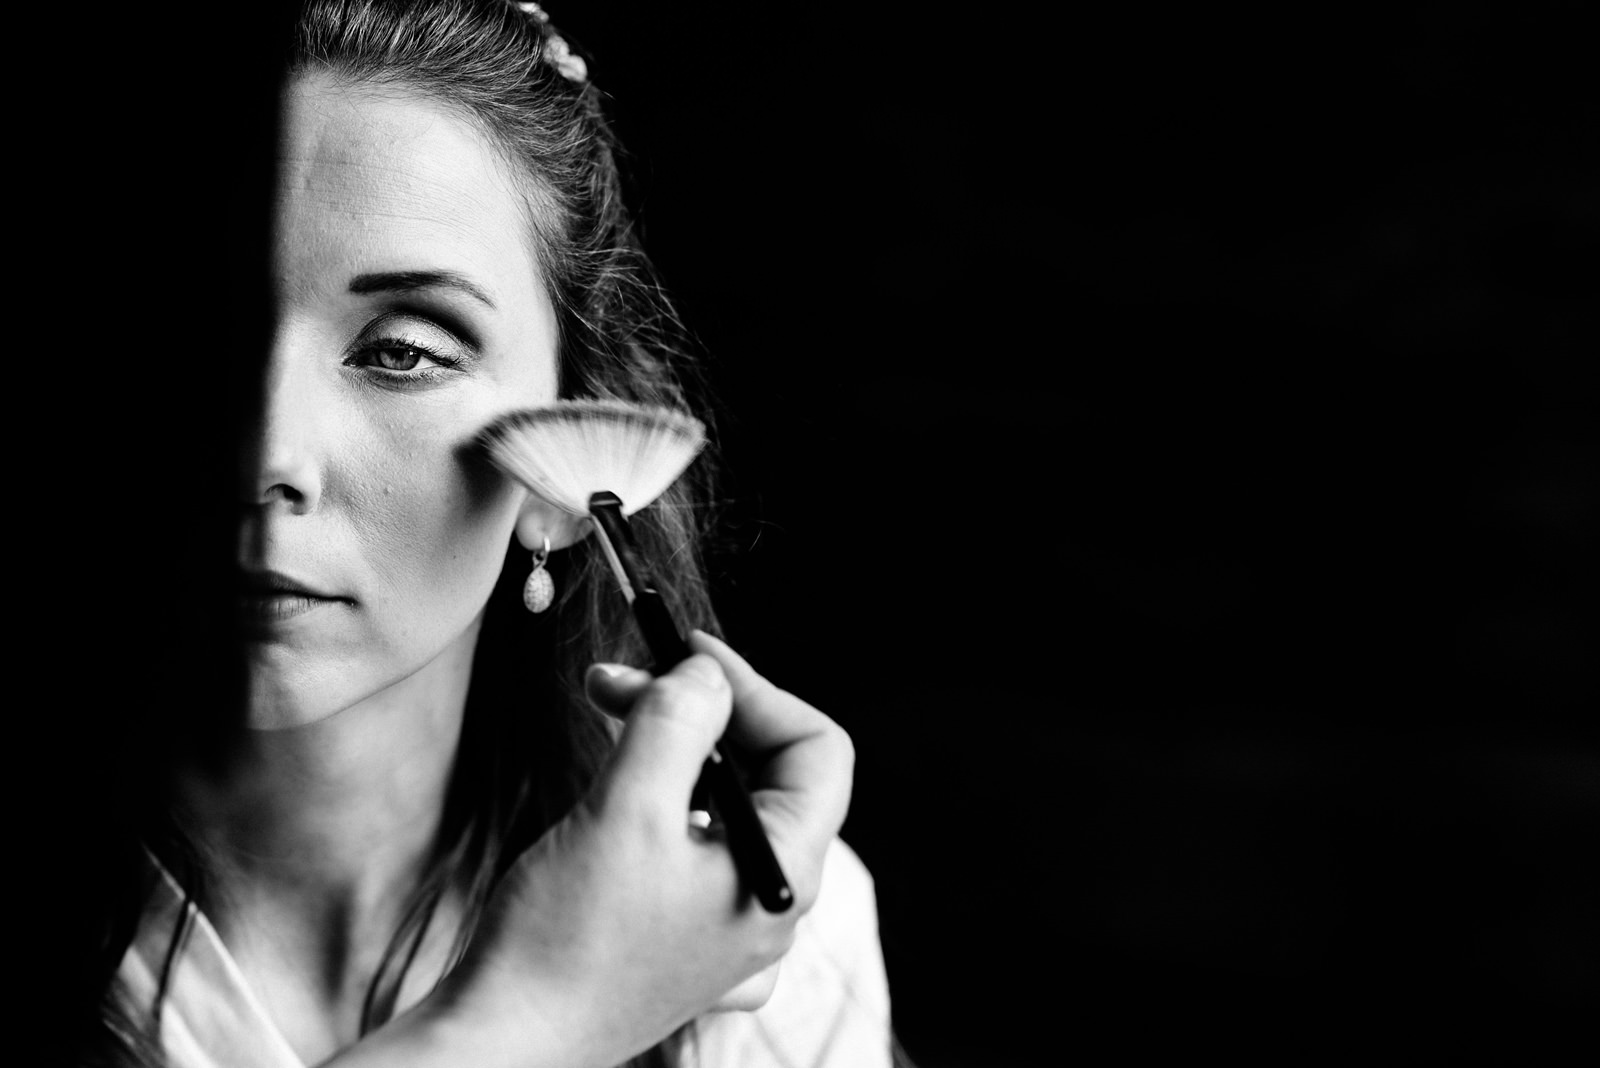 black and white bride make up photo